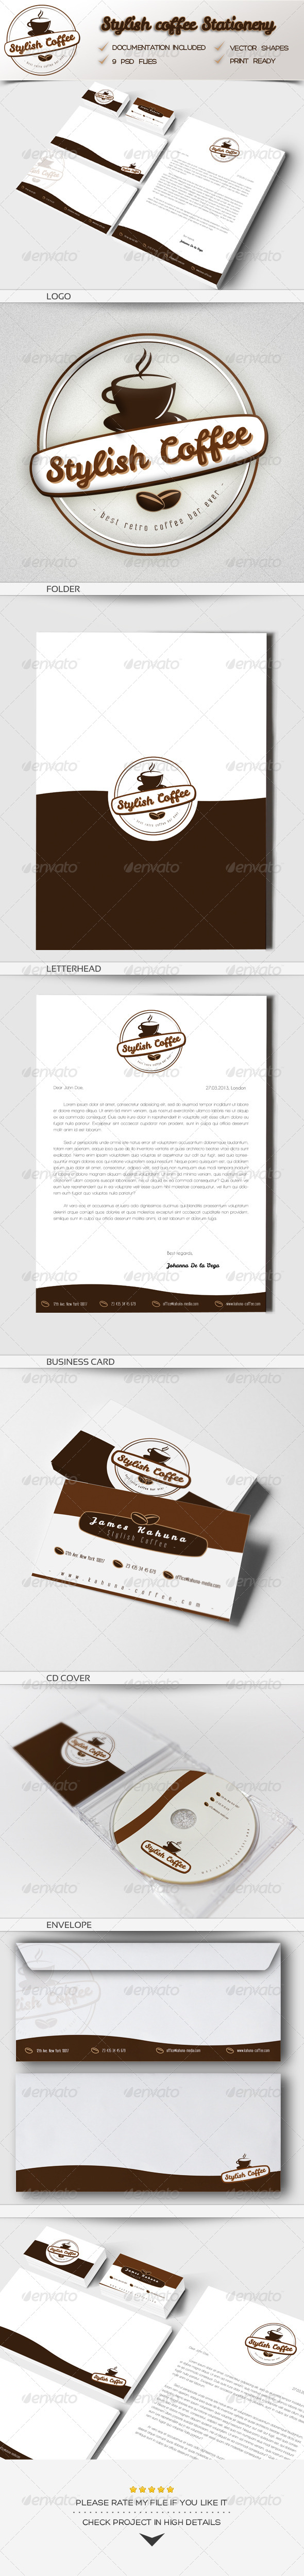 GraphicRiver Stylish Coffee Stationery 4672590